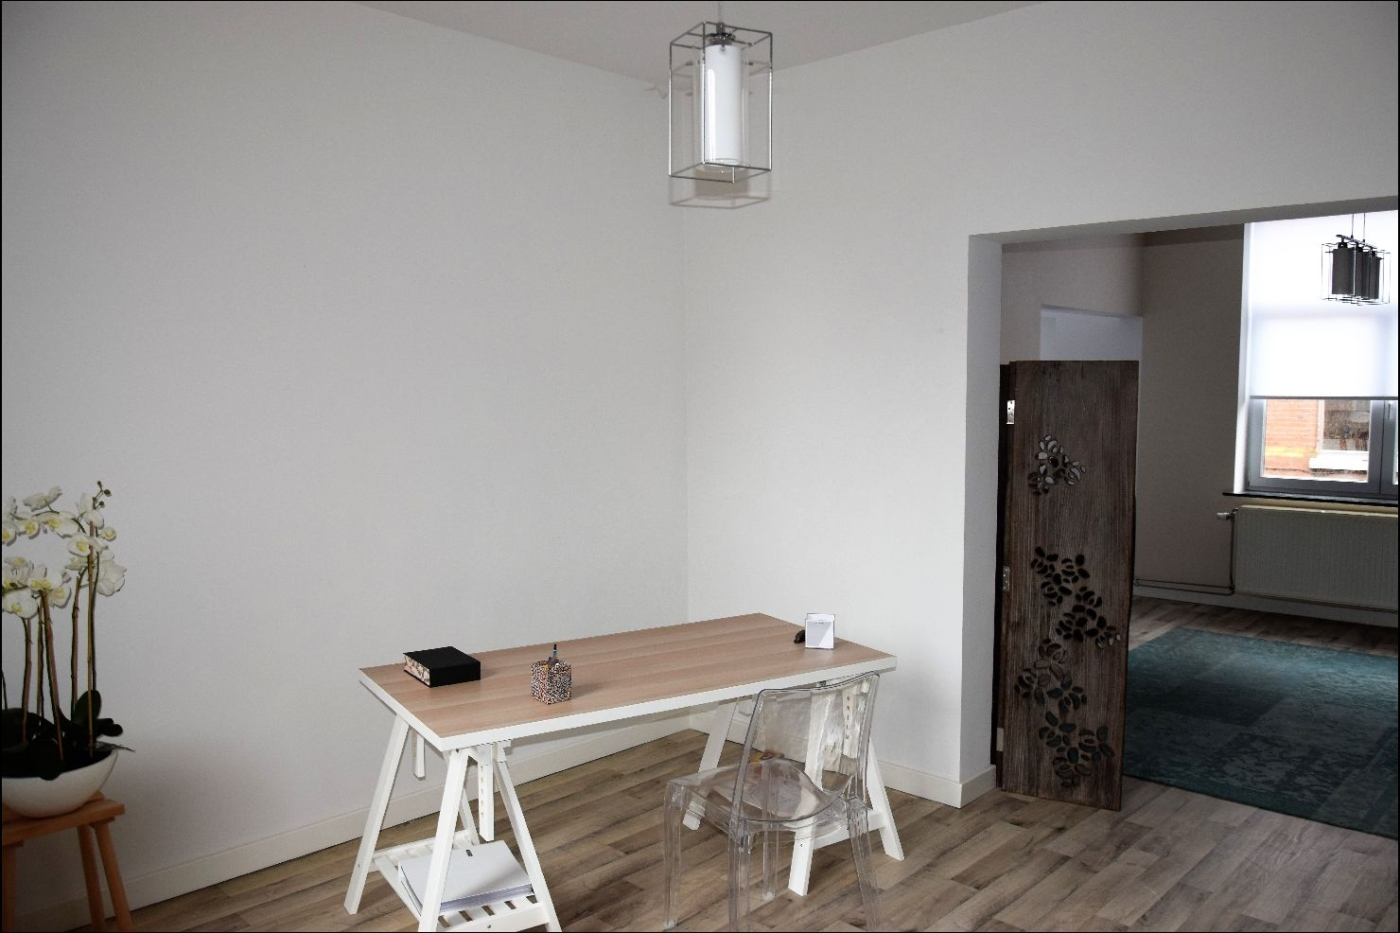 photo_'TRES BEL APPARTEMENT +- 80M² AU 1ER ETAGE D'UN PETIT IMMEUBLE